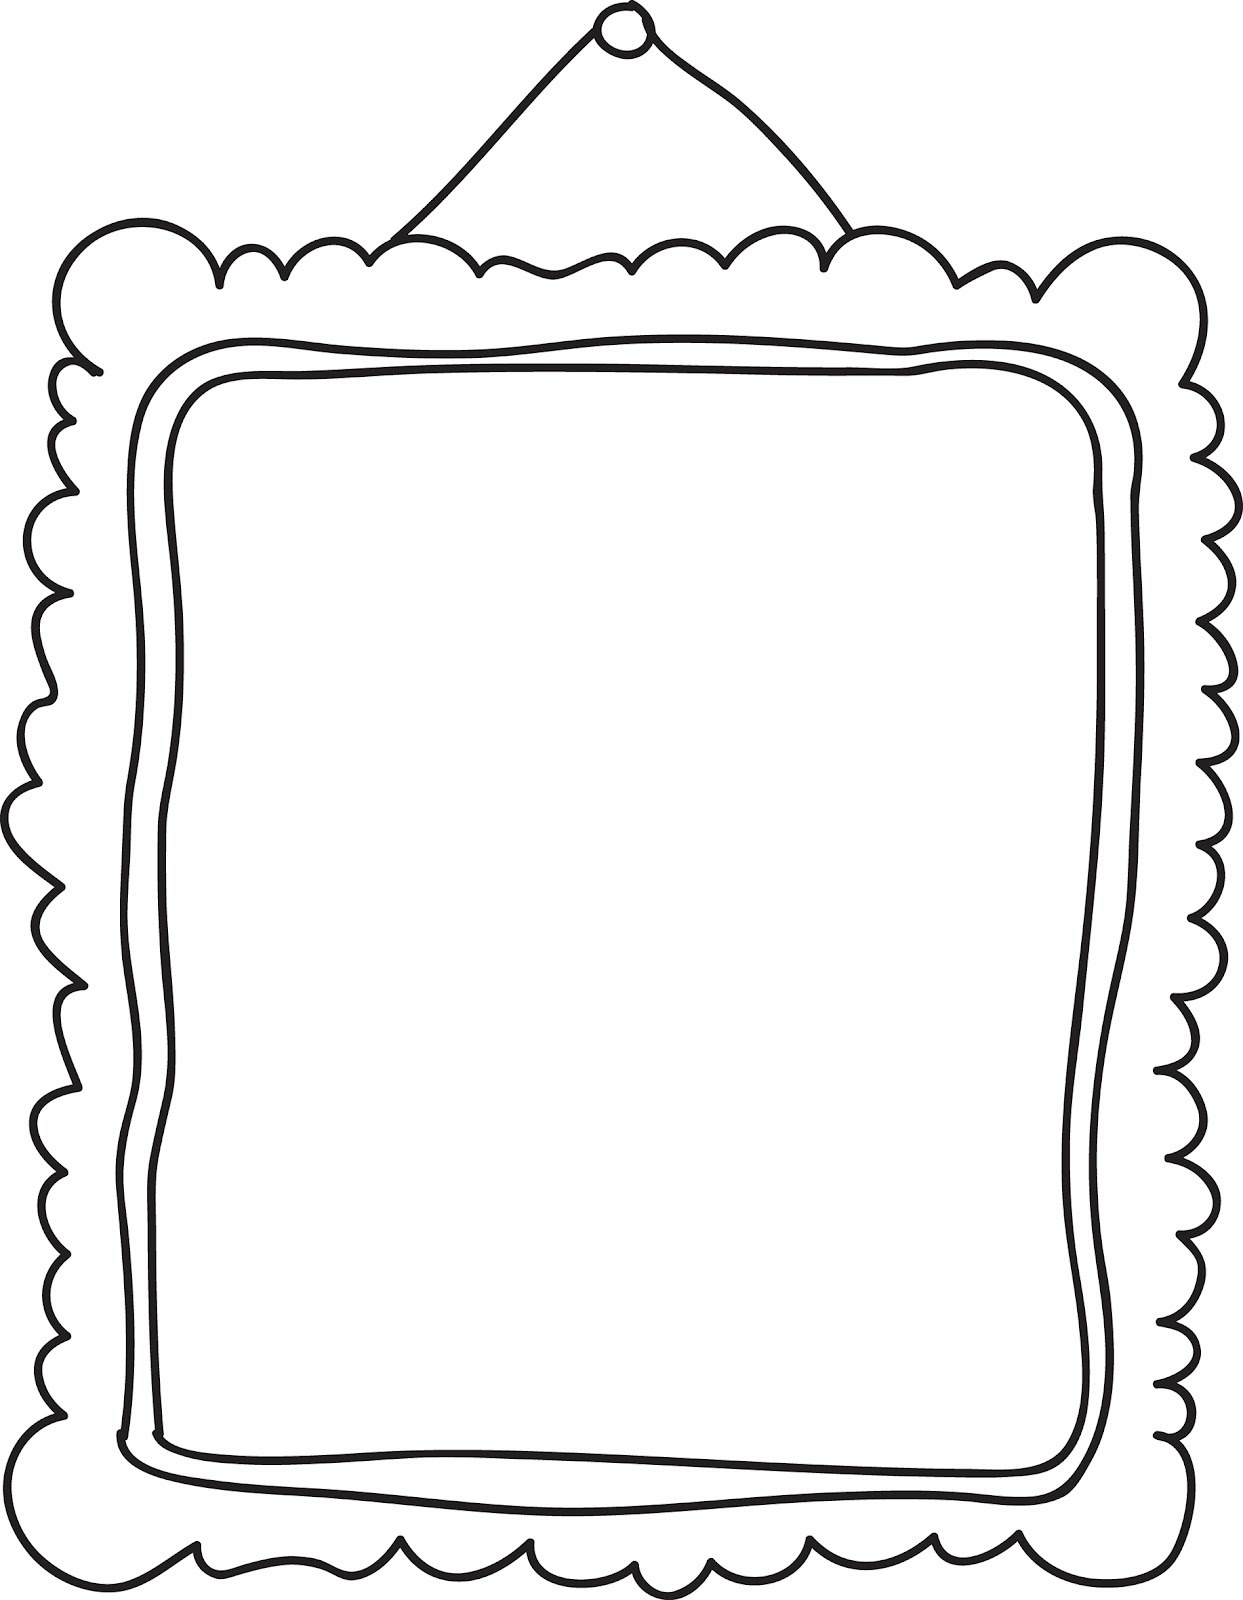 Free cliparts download clip. Frame clipart doodle vector freeuse download